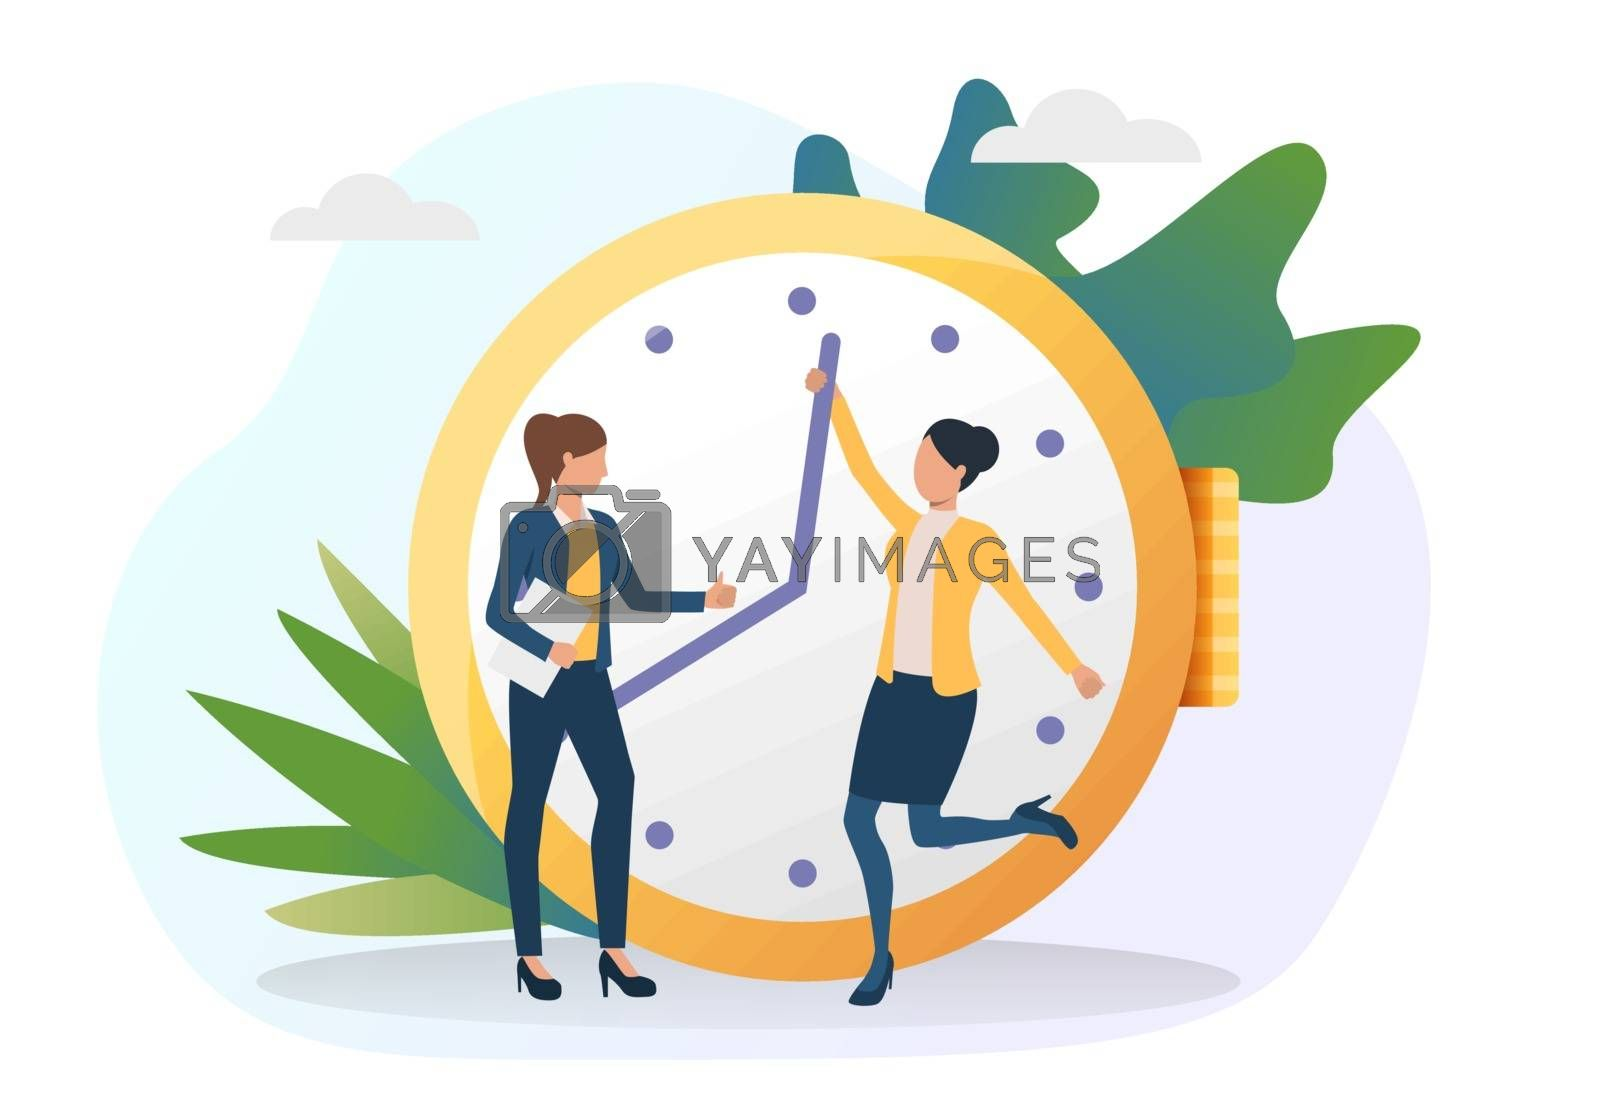 Business women moving clock hands ahead. Colleagues standing at clock, showing thumb up. Time management concept. Vector illustration for posters, presentation slides, landing pages